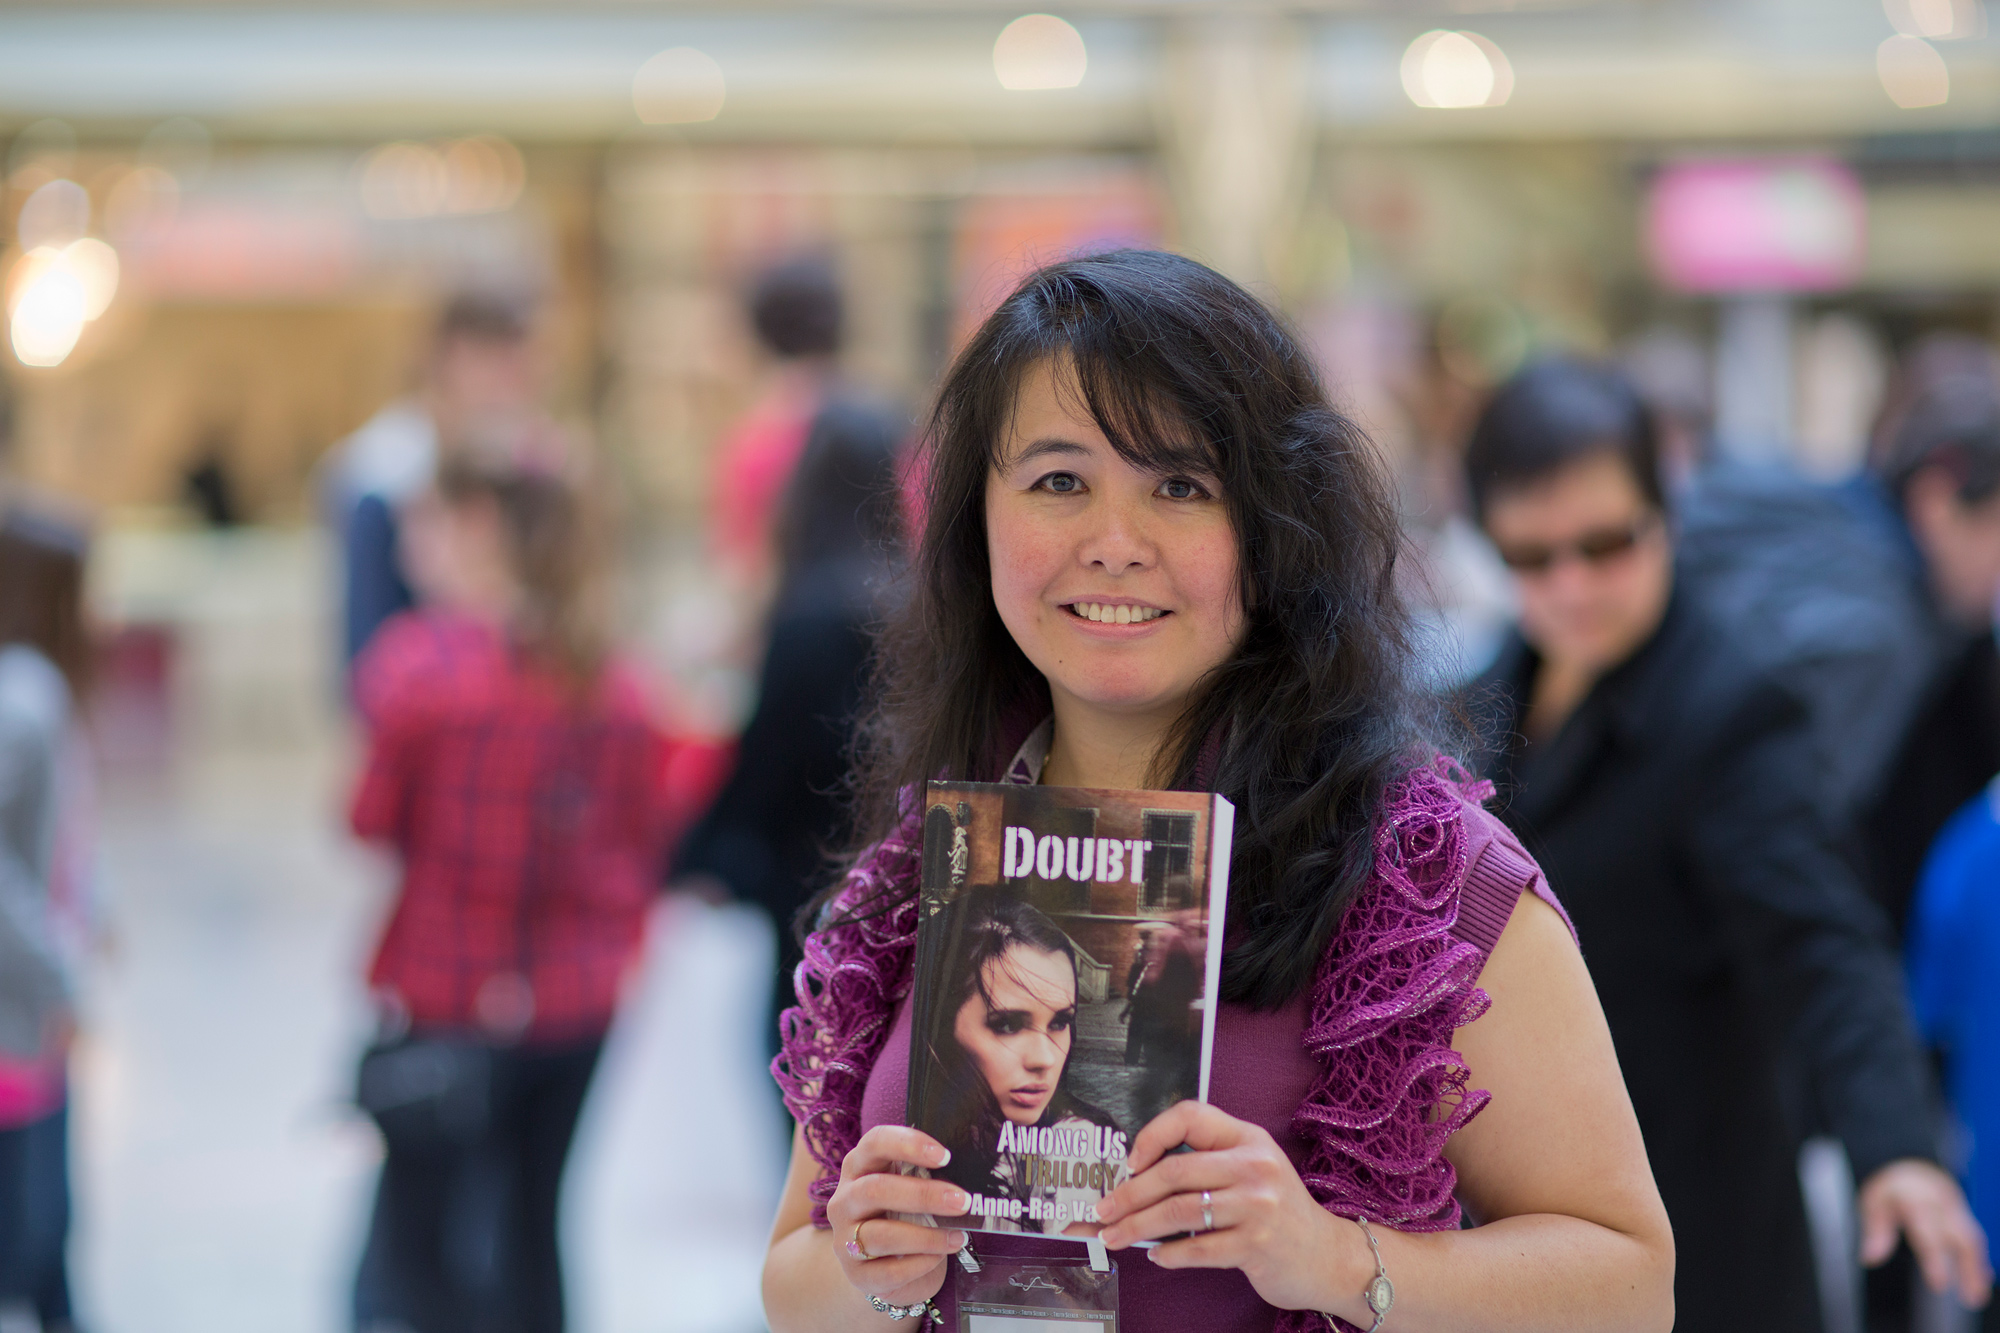 author of Doubt, Among Us Trilogy is launched at Raindance Book Festival